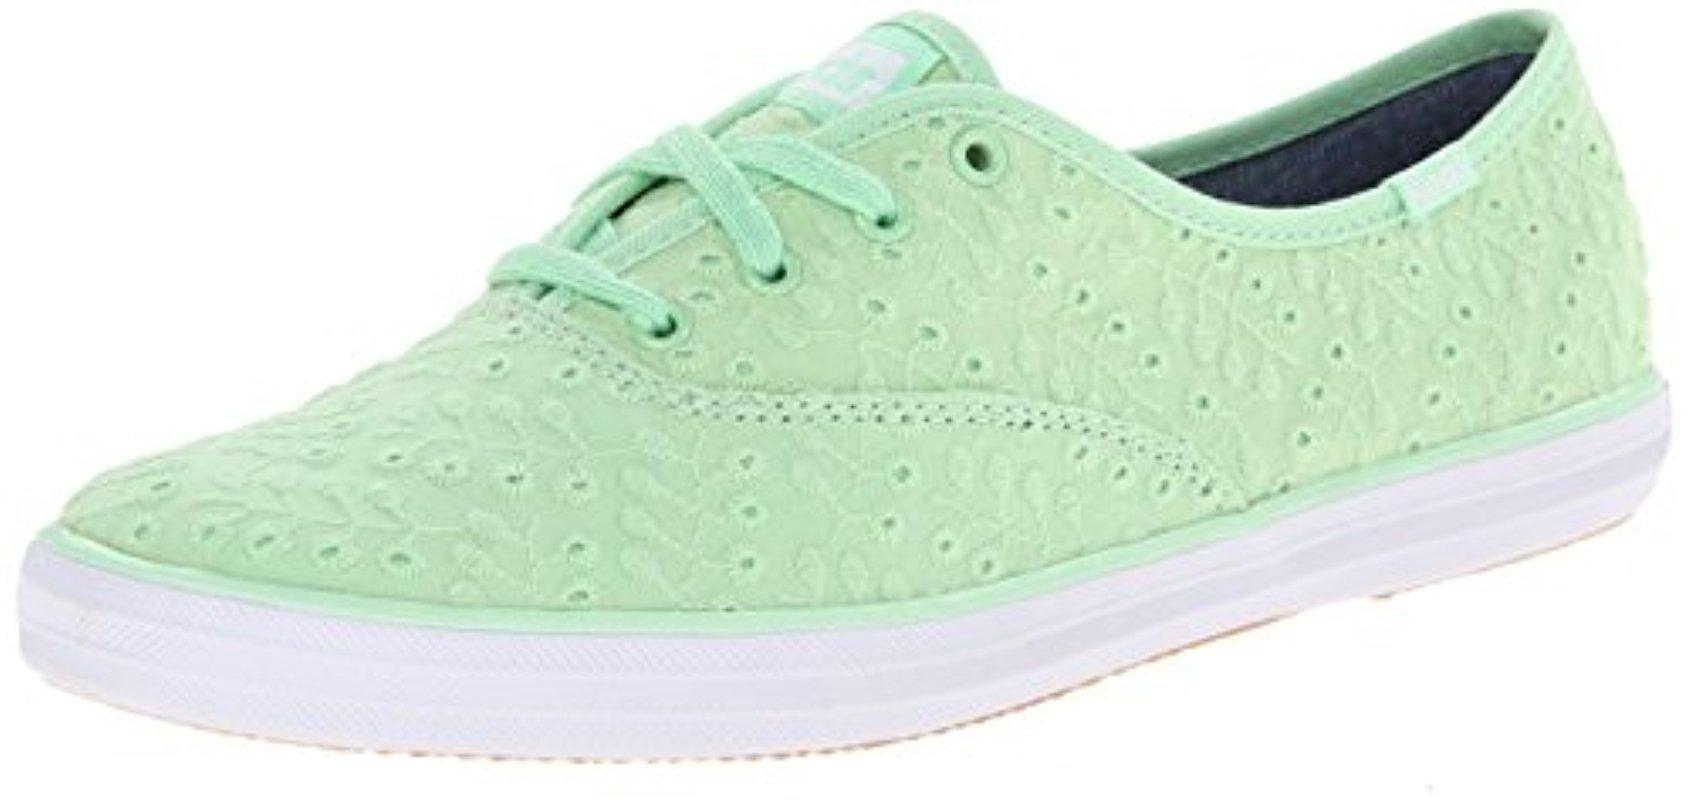 acd5f58bf4623a Lyst - Keds Champion Eyelet Fashion Sneaker wf52481 (6) in Green